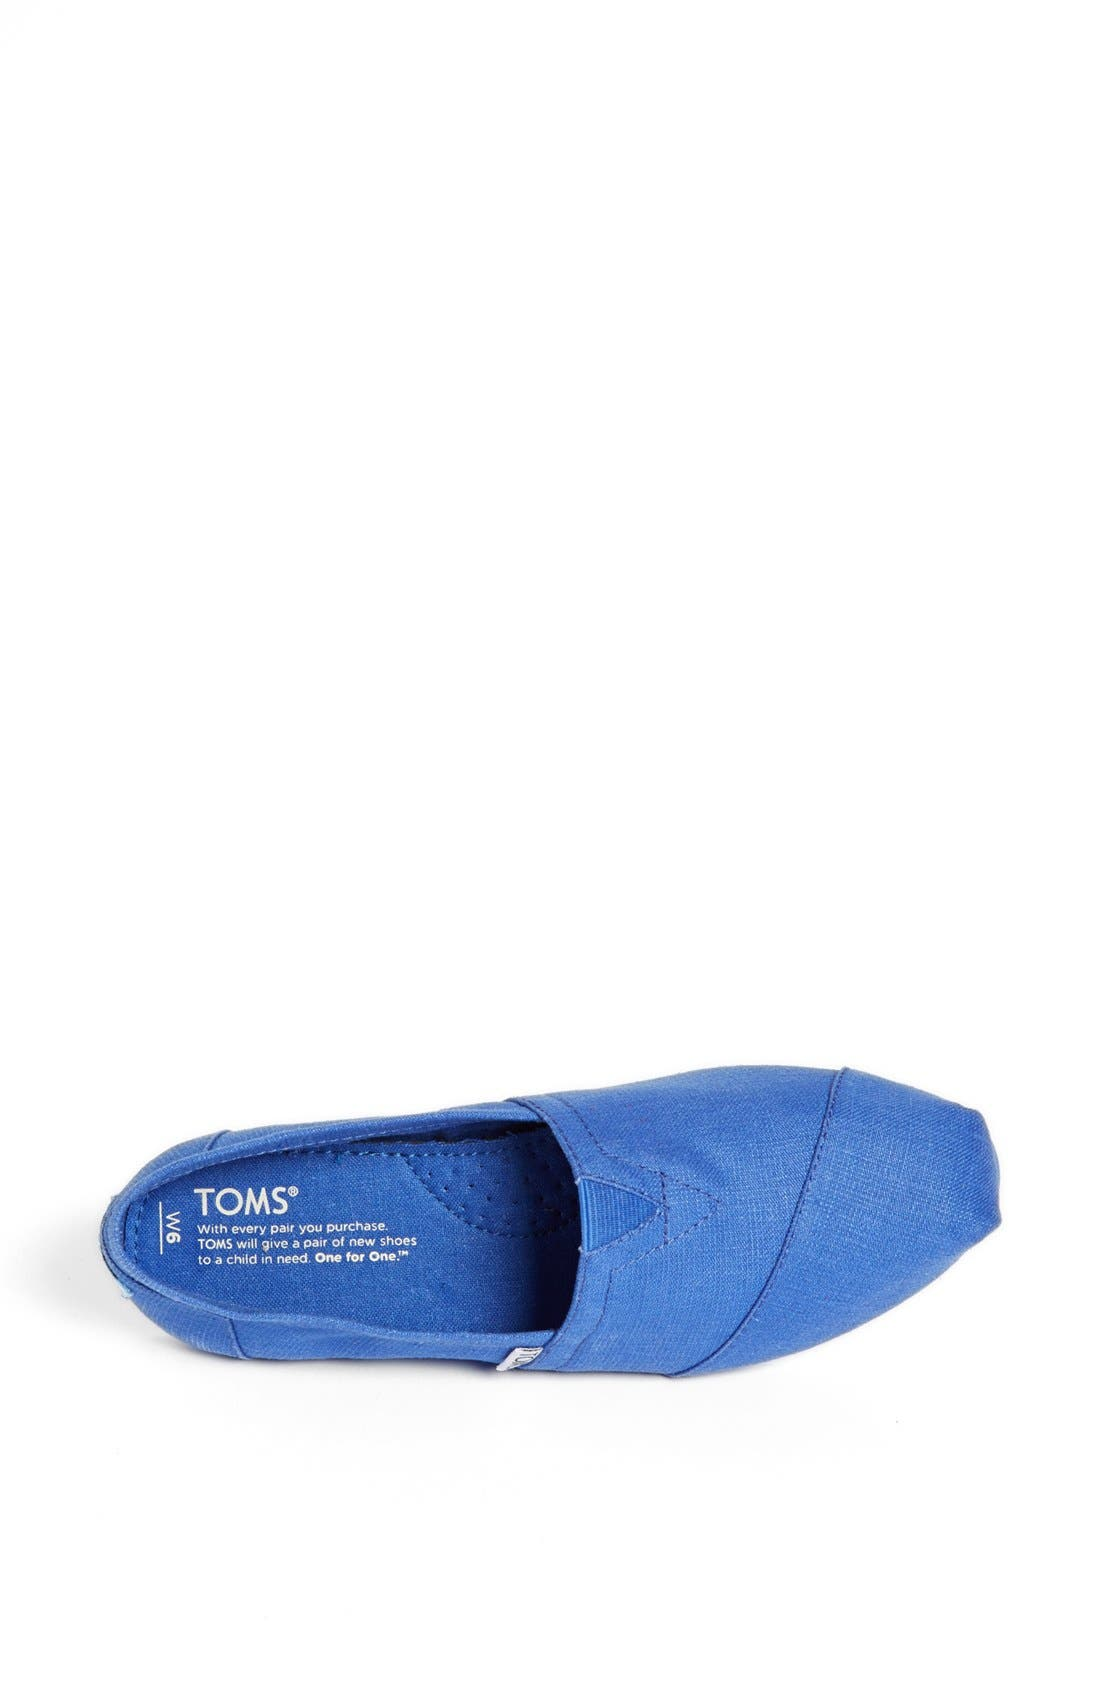 Alternate Image 3  - TOMS 'Classic - Earthwise' Vegan Slip-On (Women)